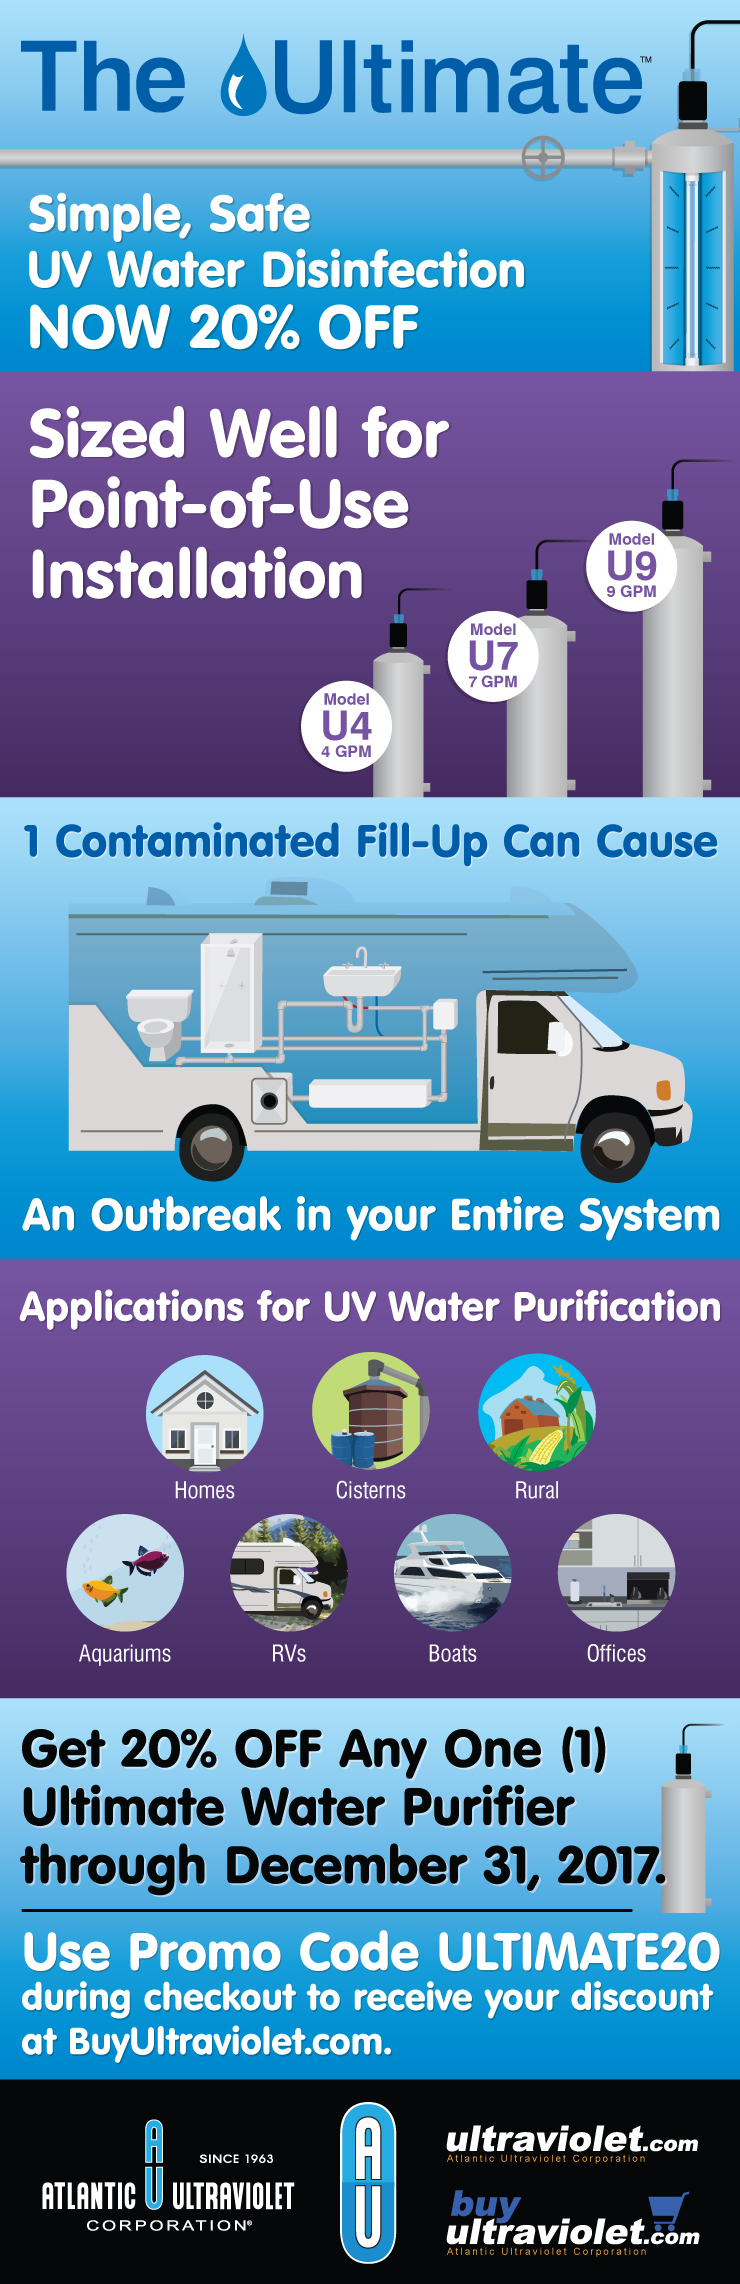 The Ultimate: Simple, Safe UV Water Disinfection Infographic